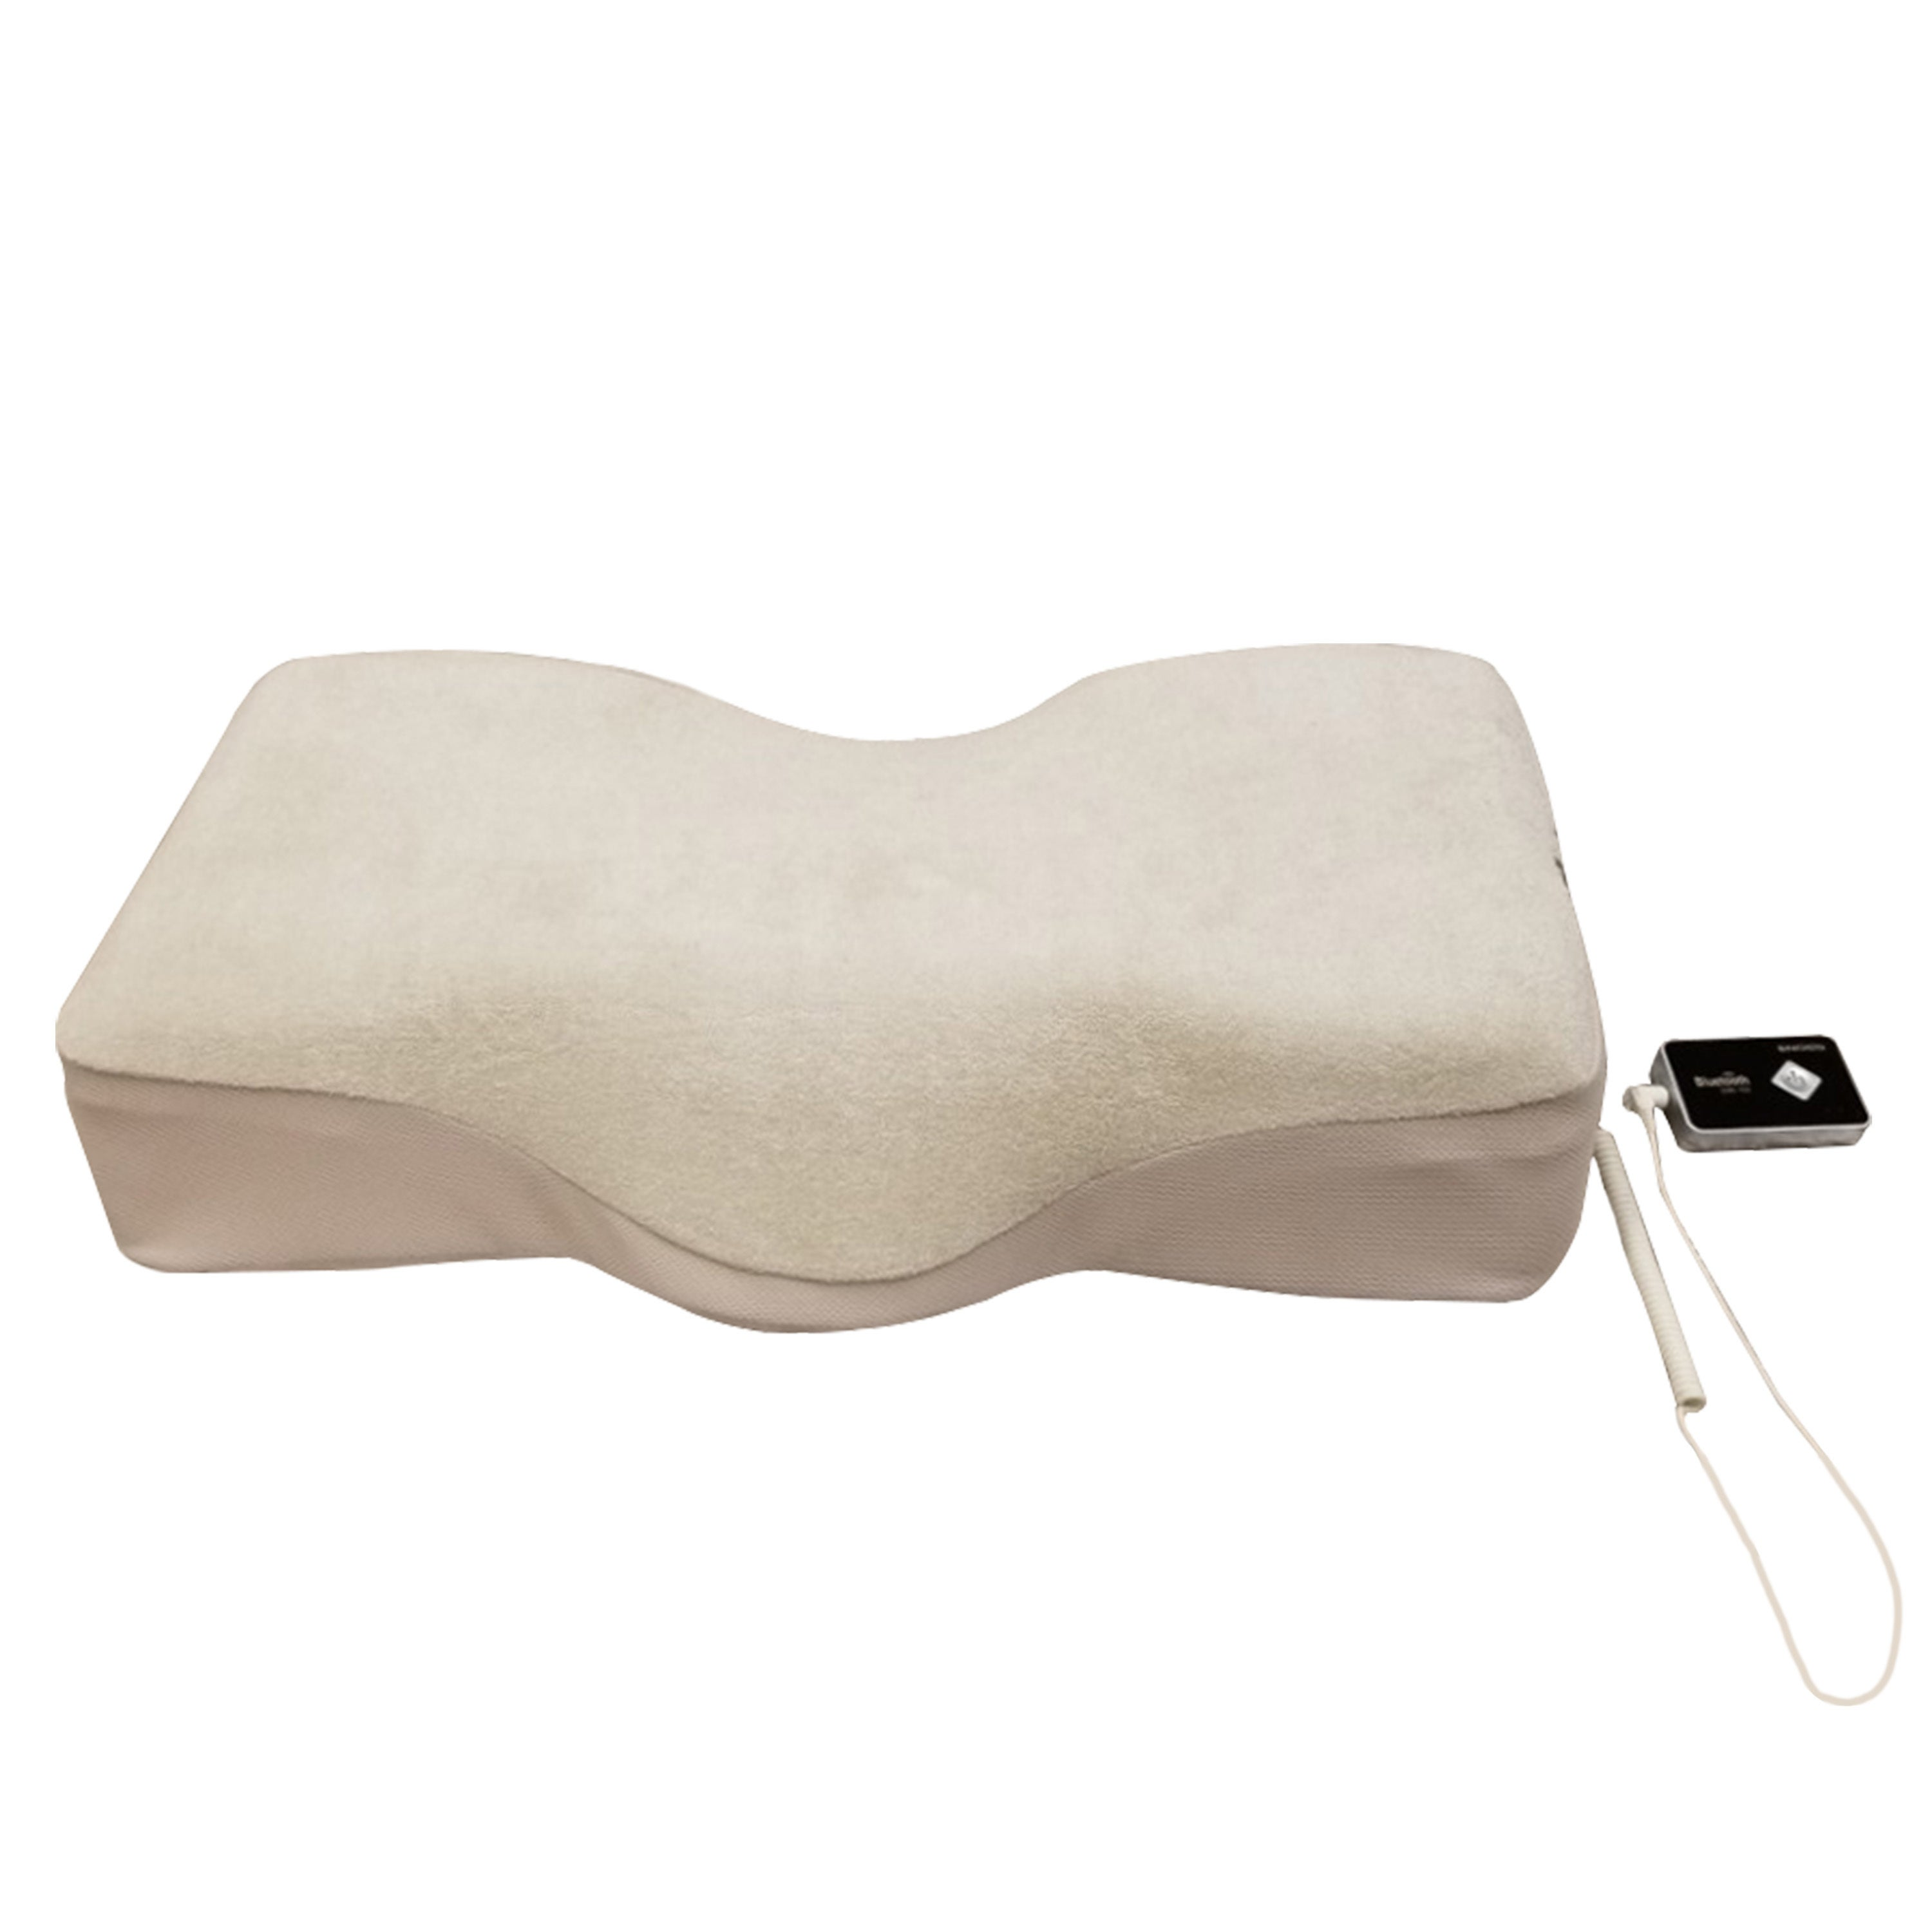 eight an therapeutic can how blogs sleep pillows help pillow you adjustable news better